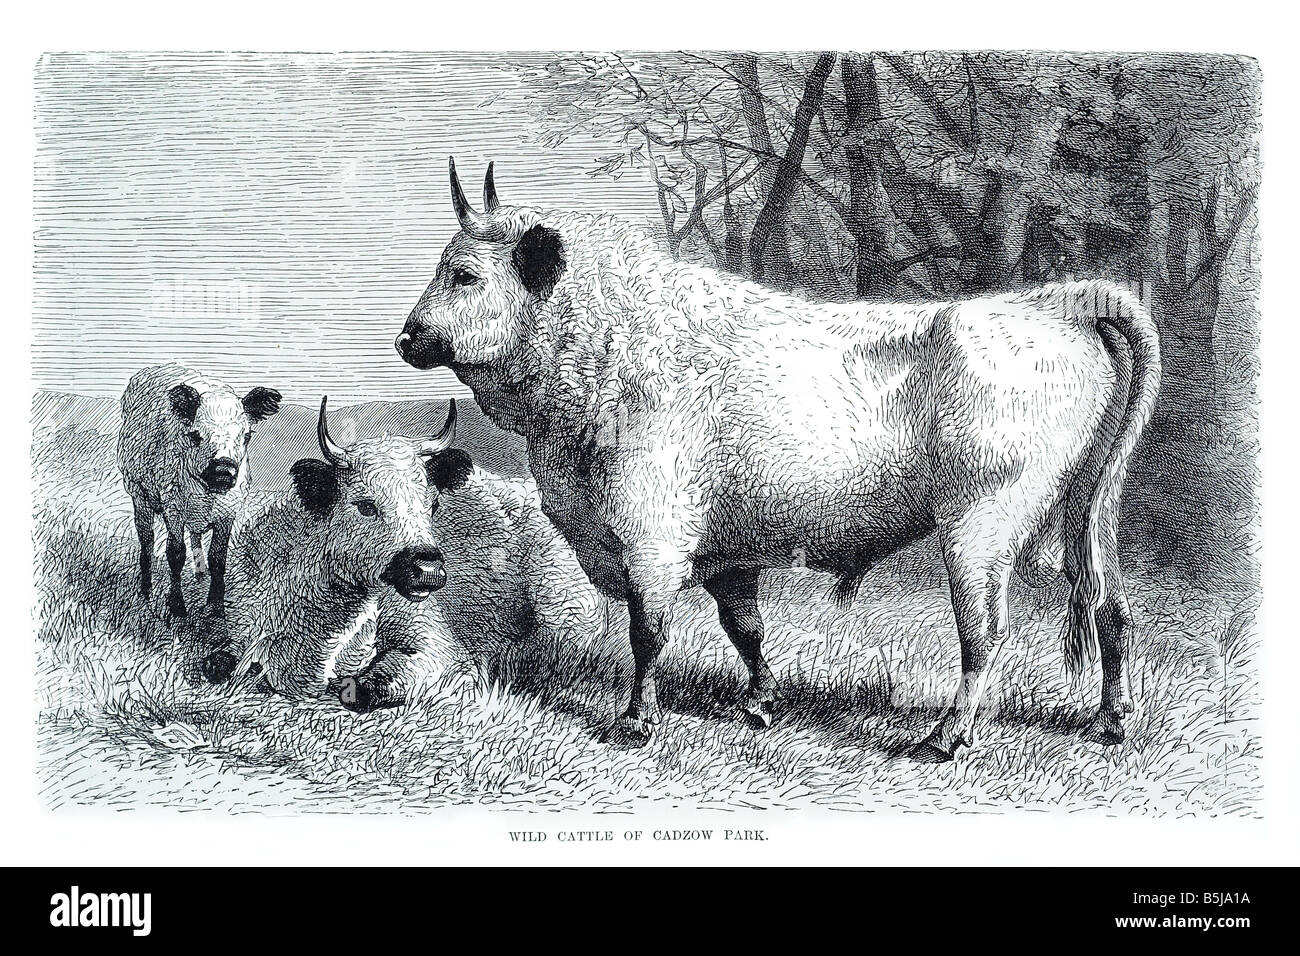 Ancient White Park cadzow cattle - Stock Image